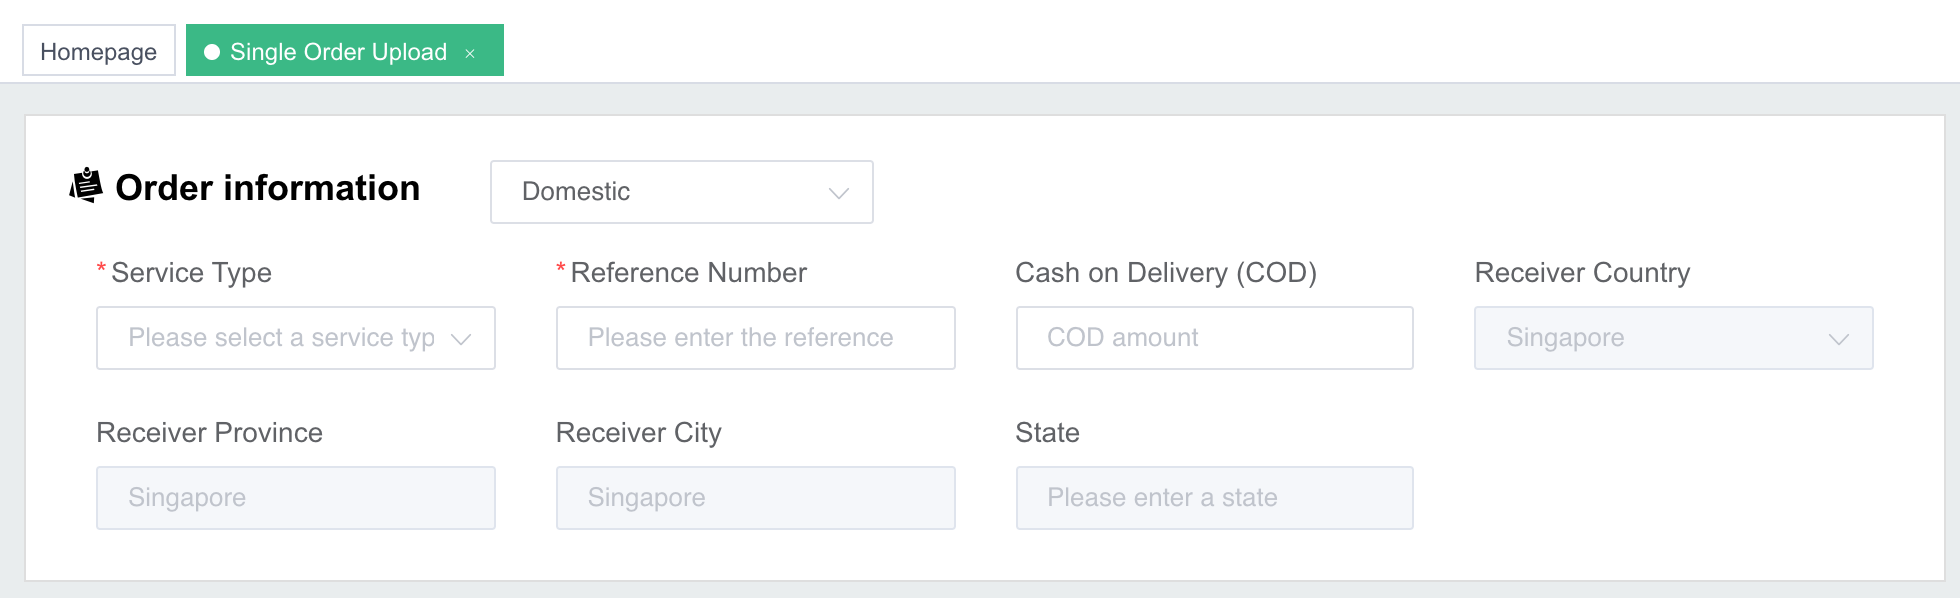 order details like cash on delivery, weight of item during shipping